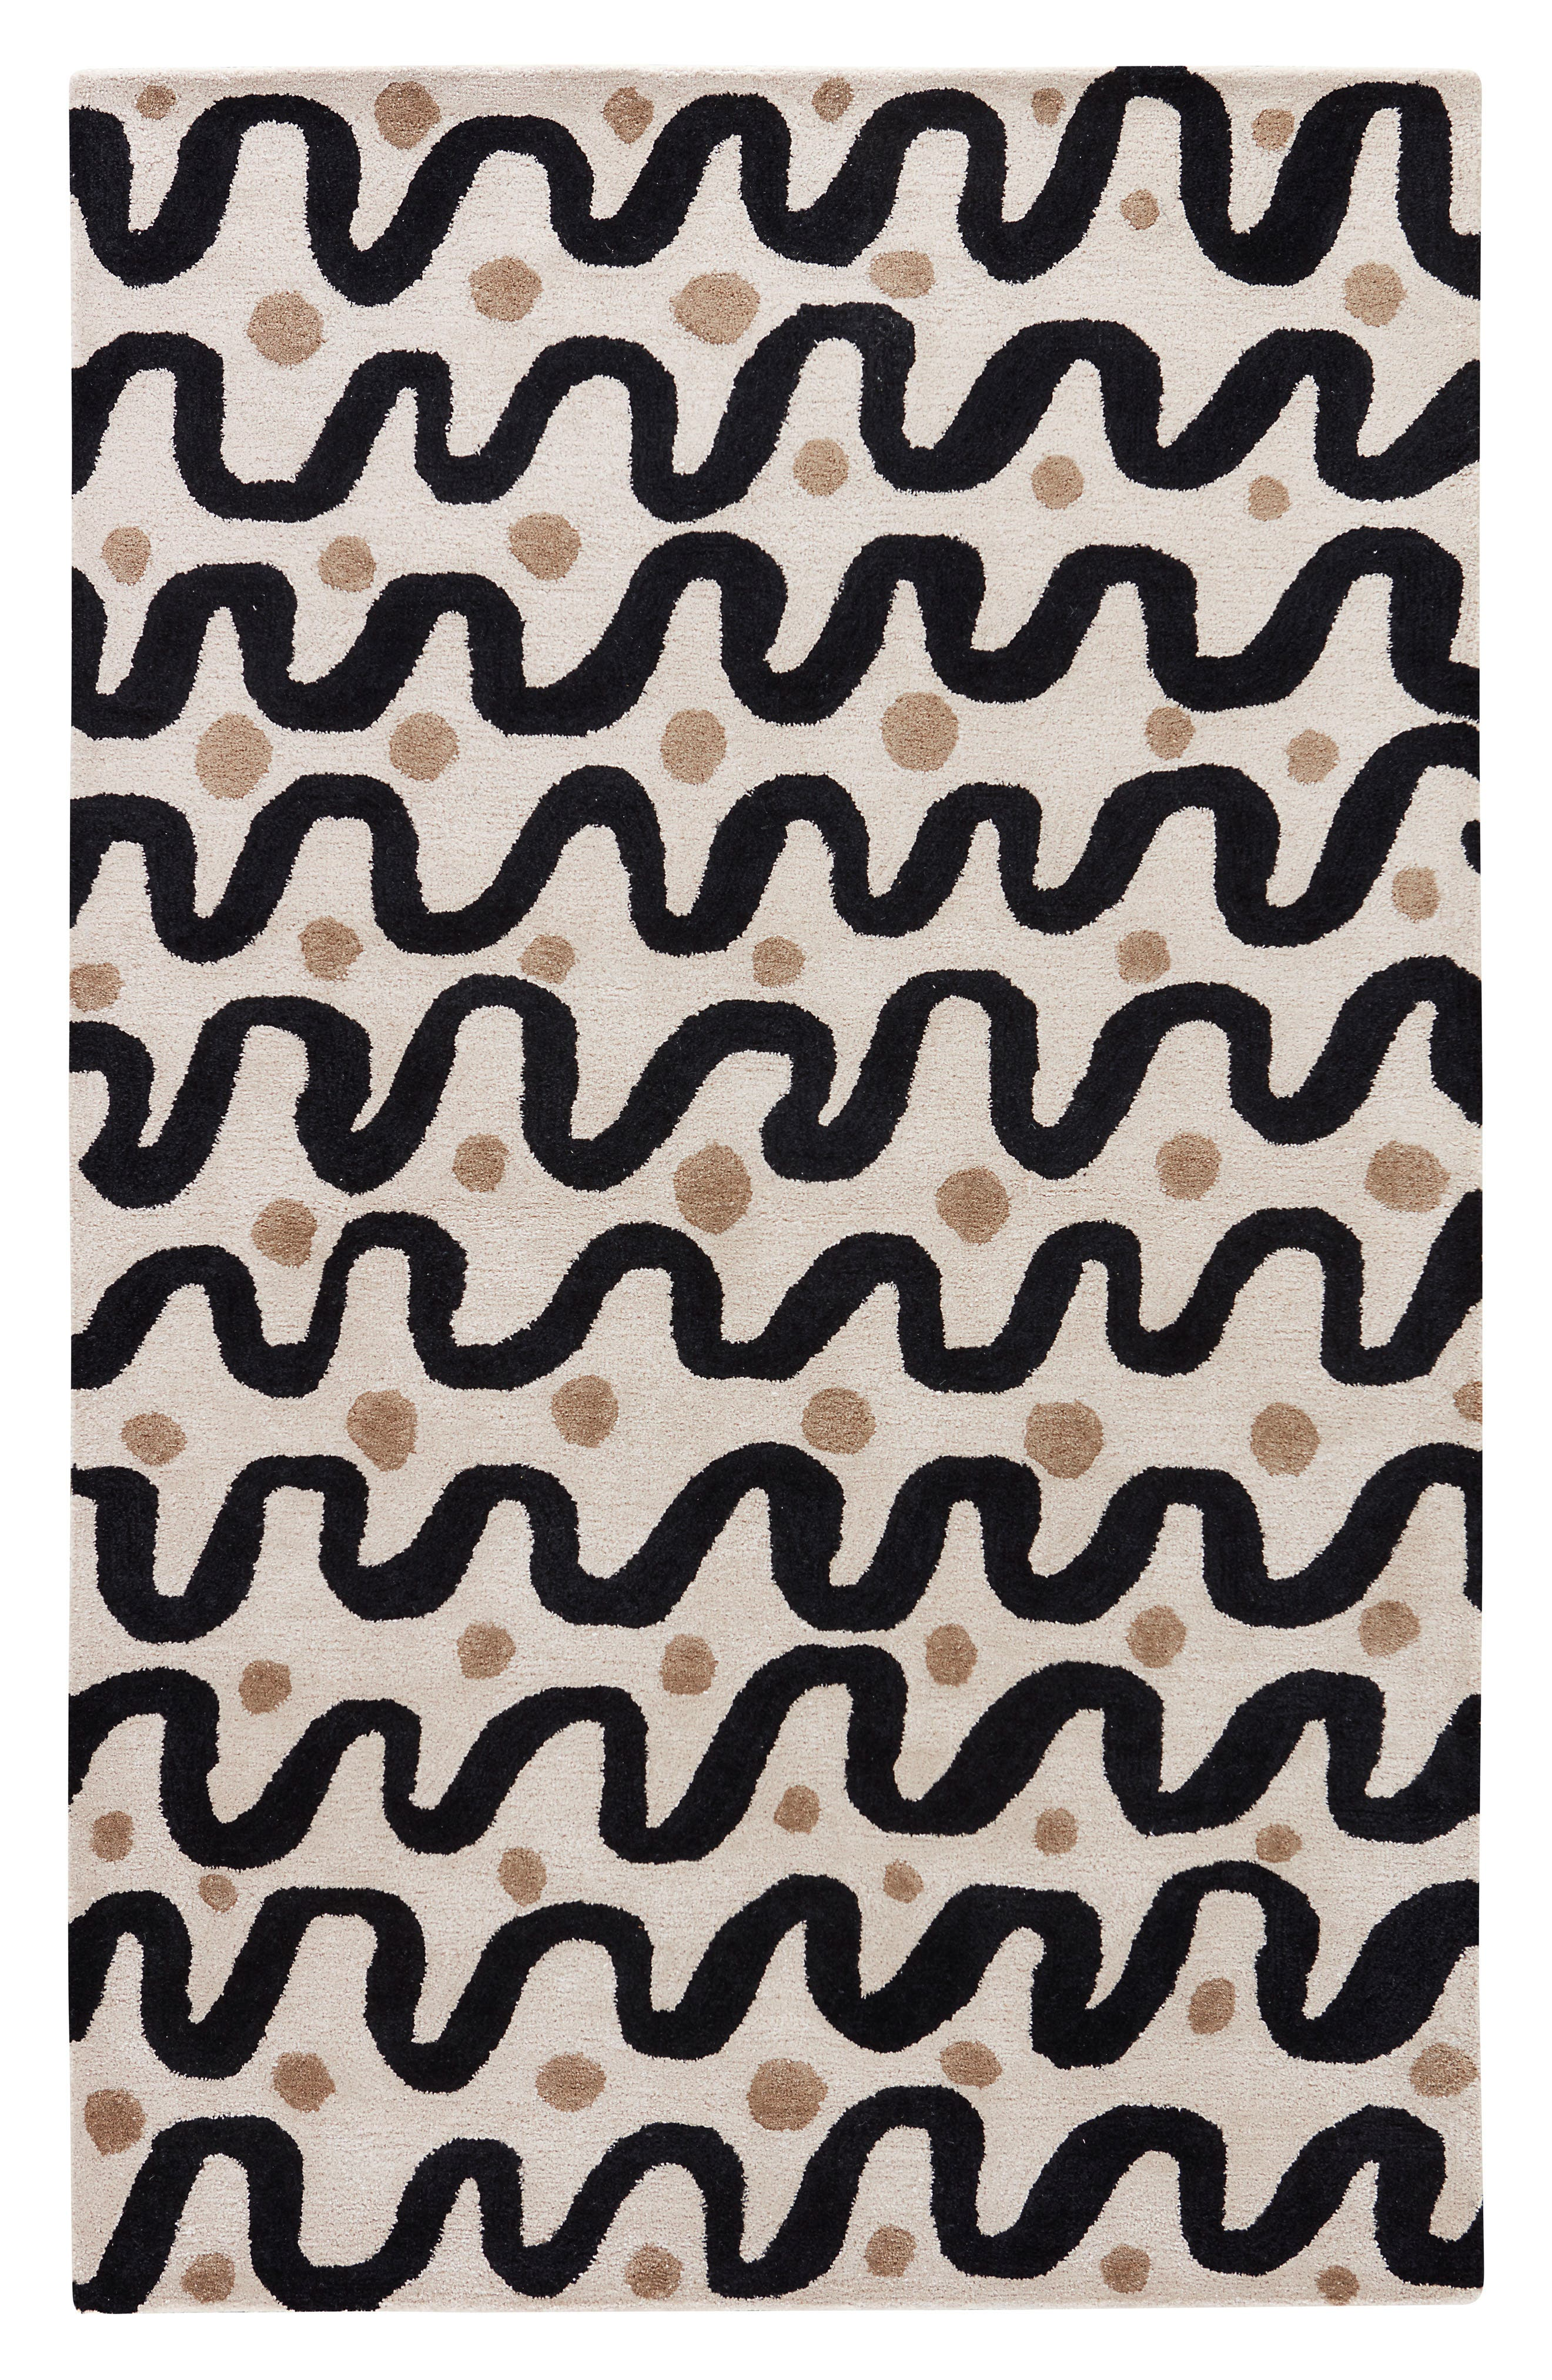 contemporary waves rug,                         Main,                         color, Beige